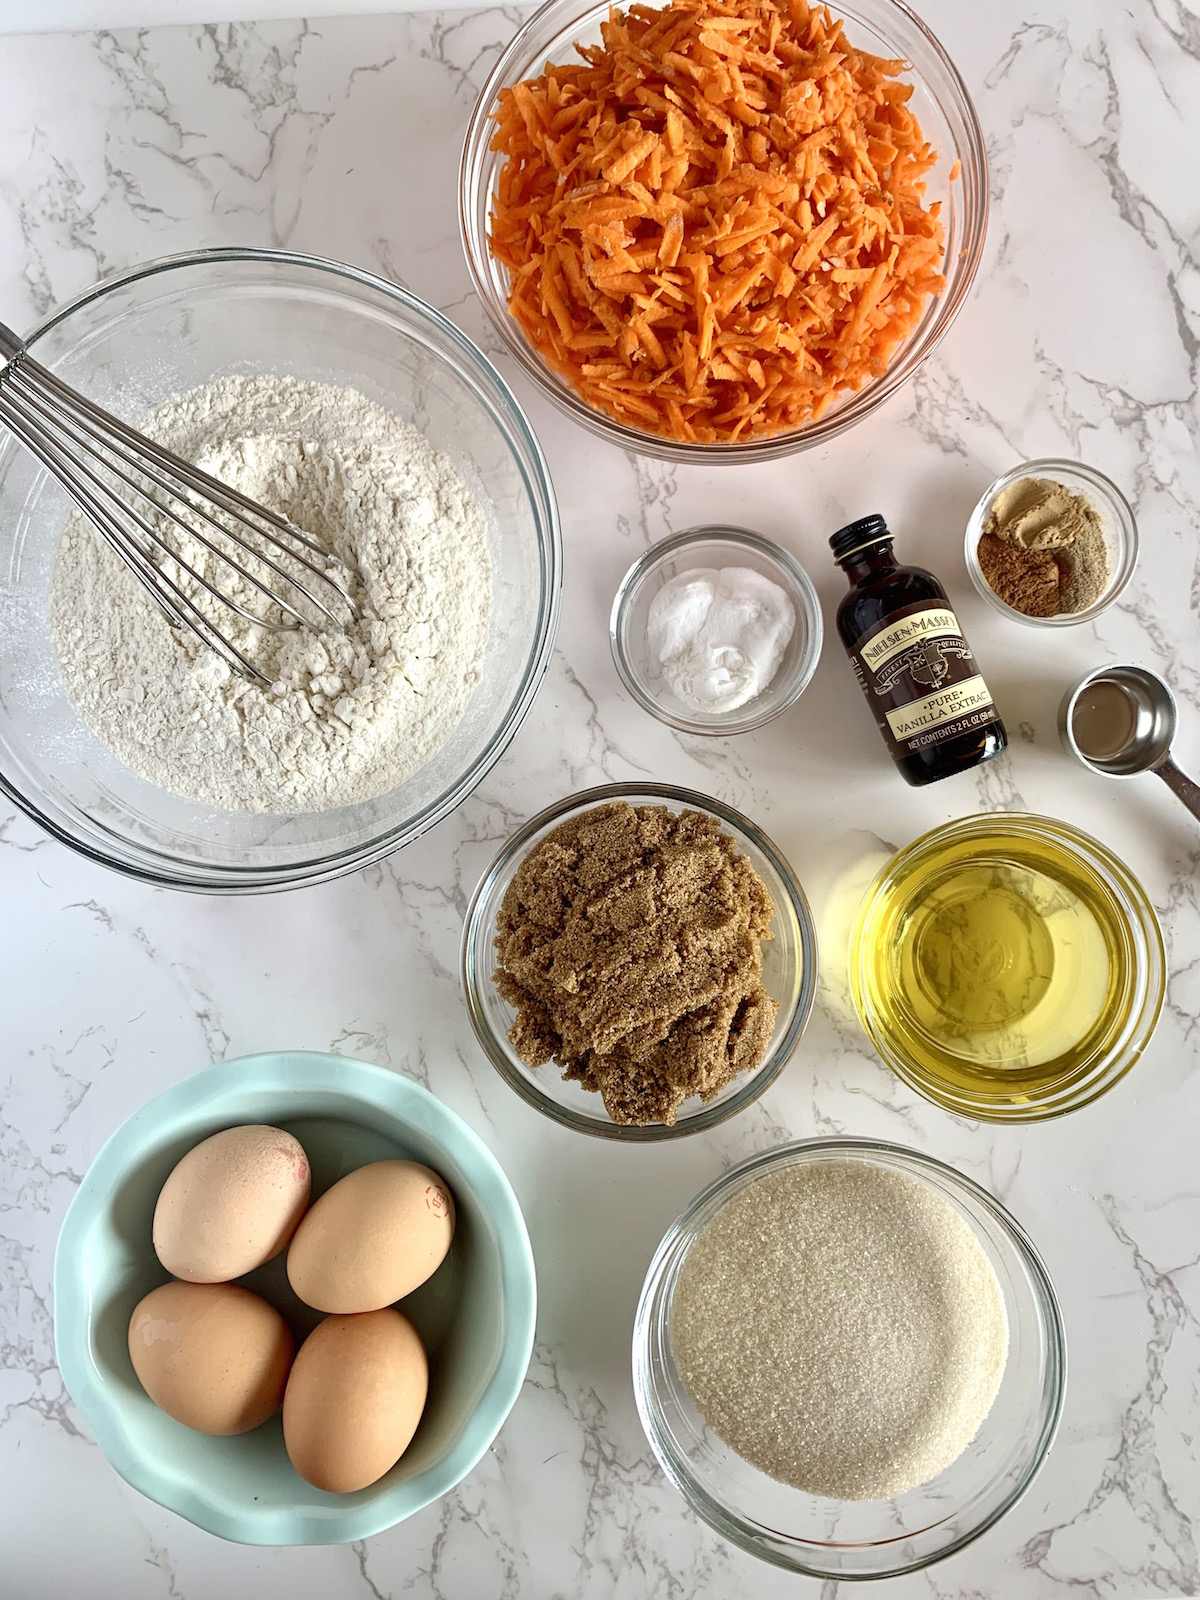 Flour, shredded carrots, eggs, sugar, spices, oil and vanilla all in little bowls